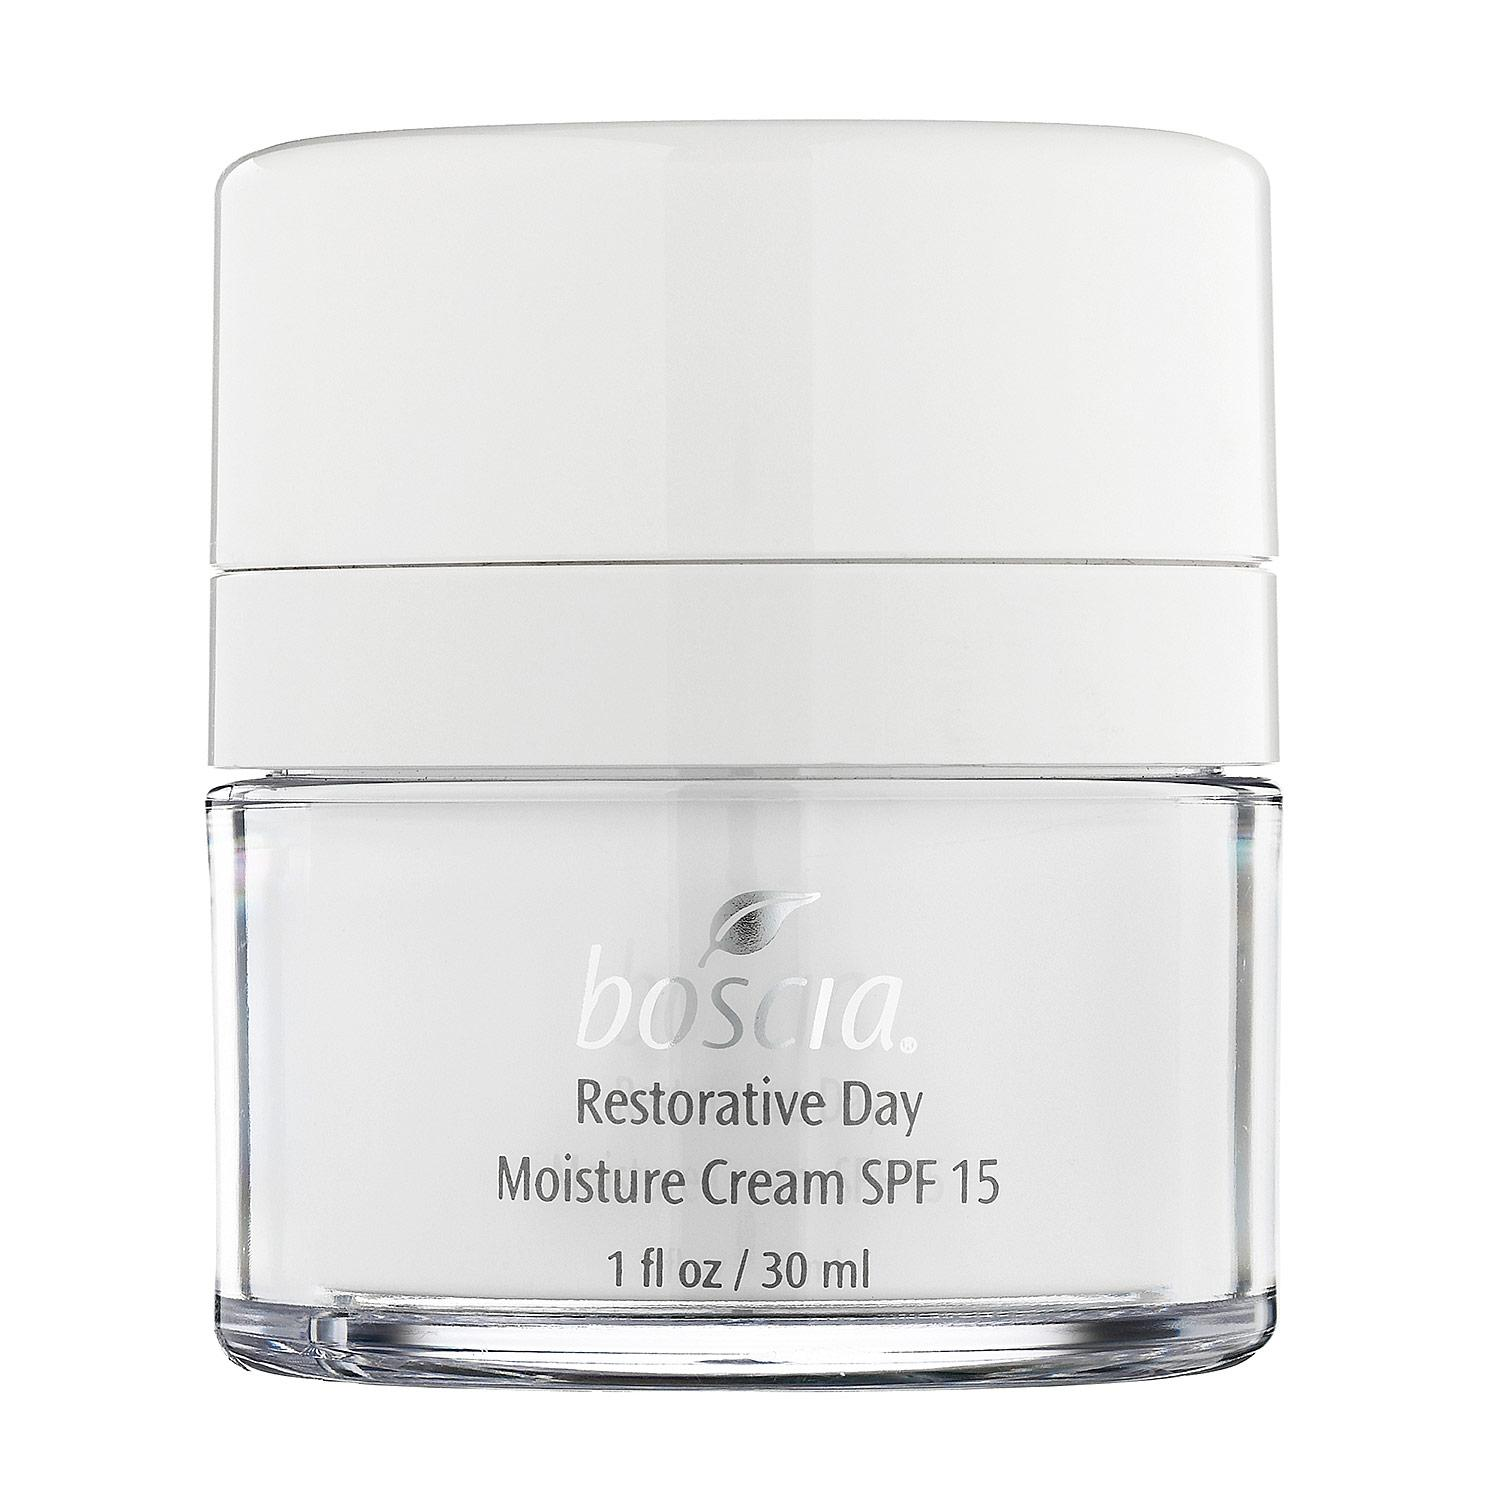 Restorative Day Moisture Cream SPF 15